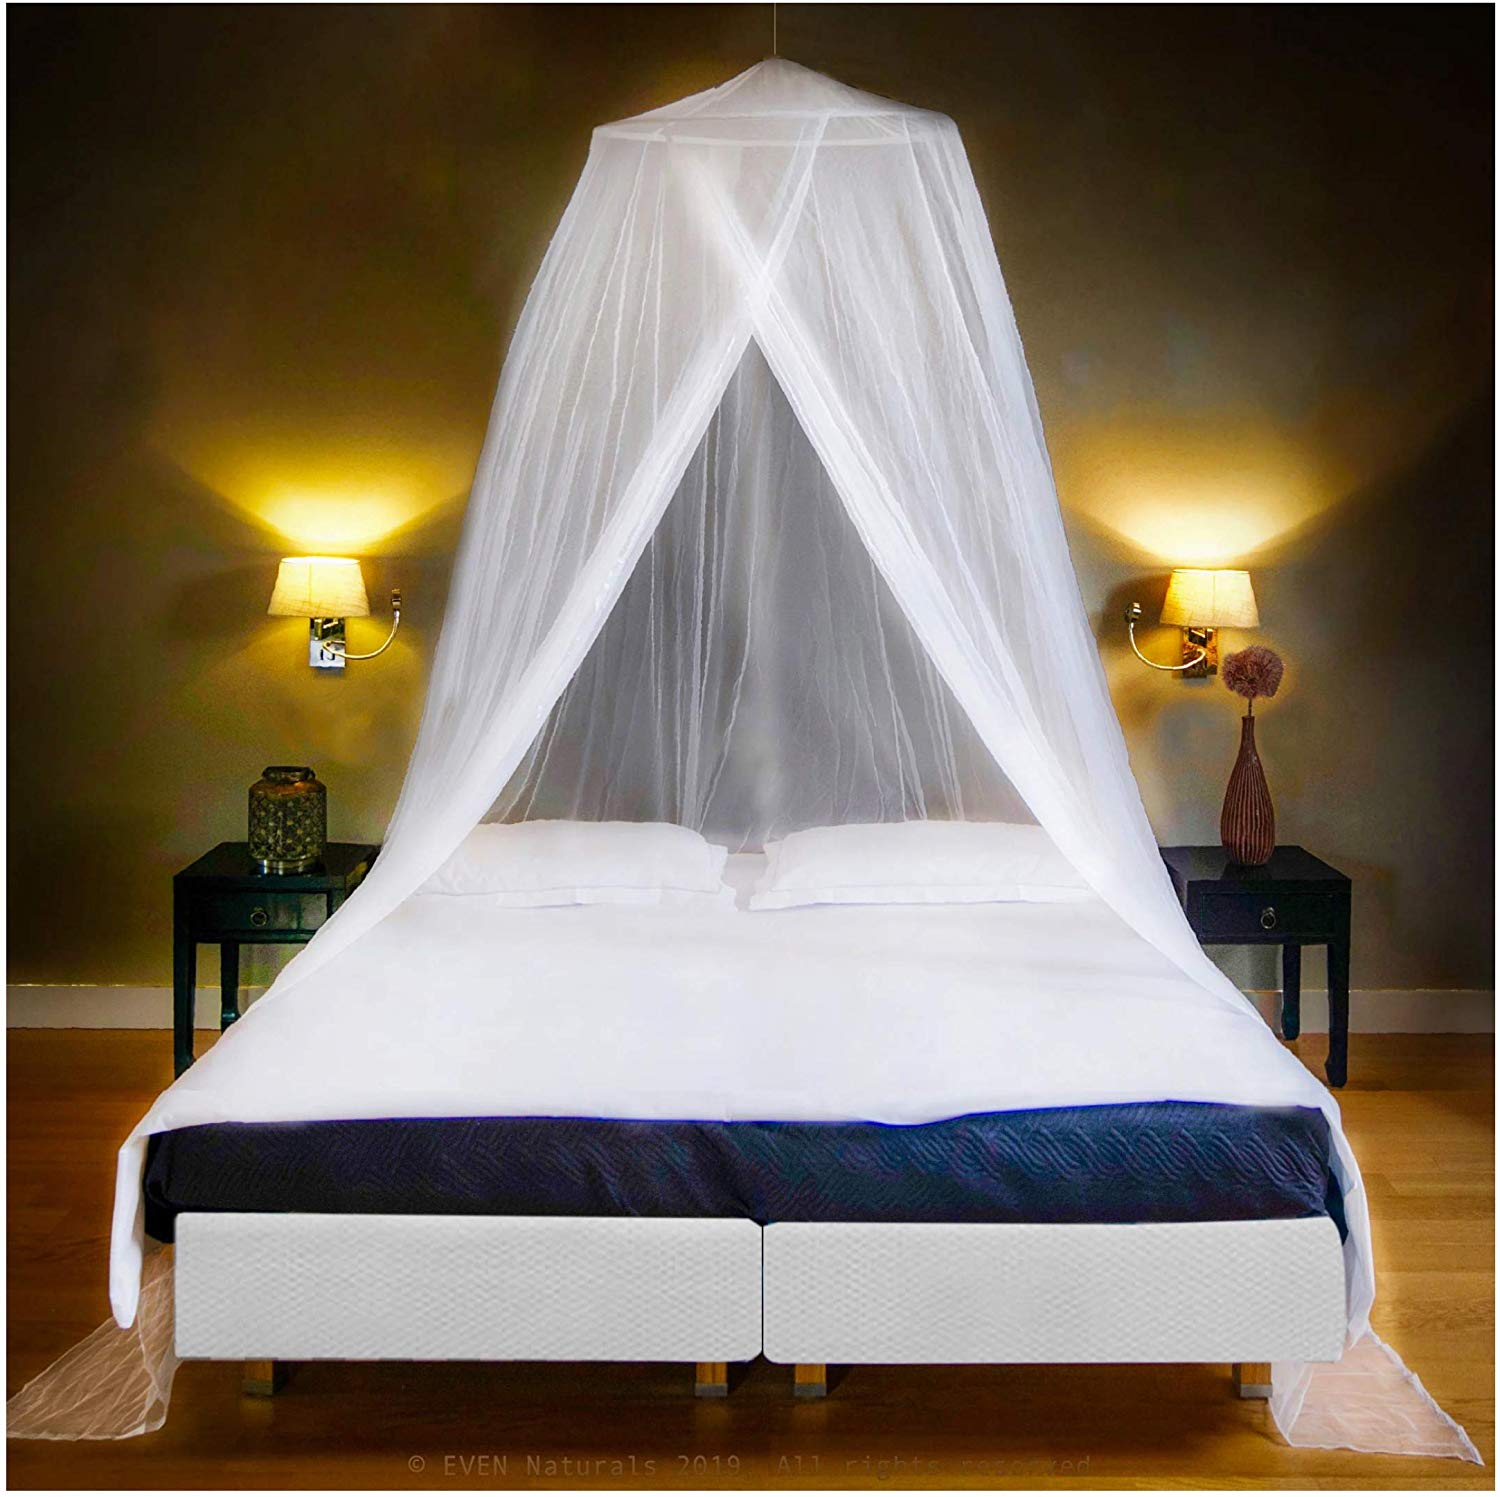 EVEN Naturals® Mosquito Nets